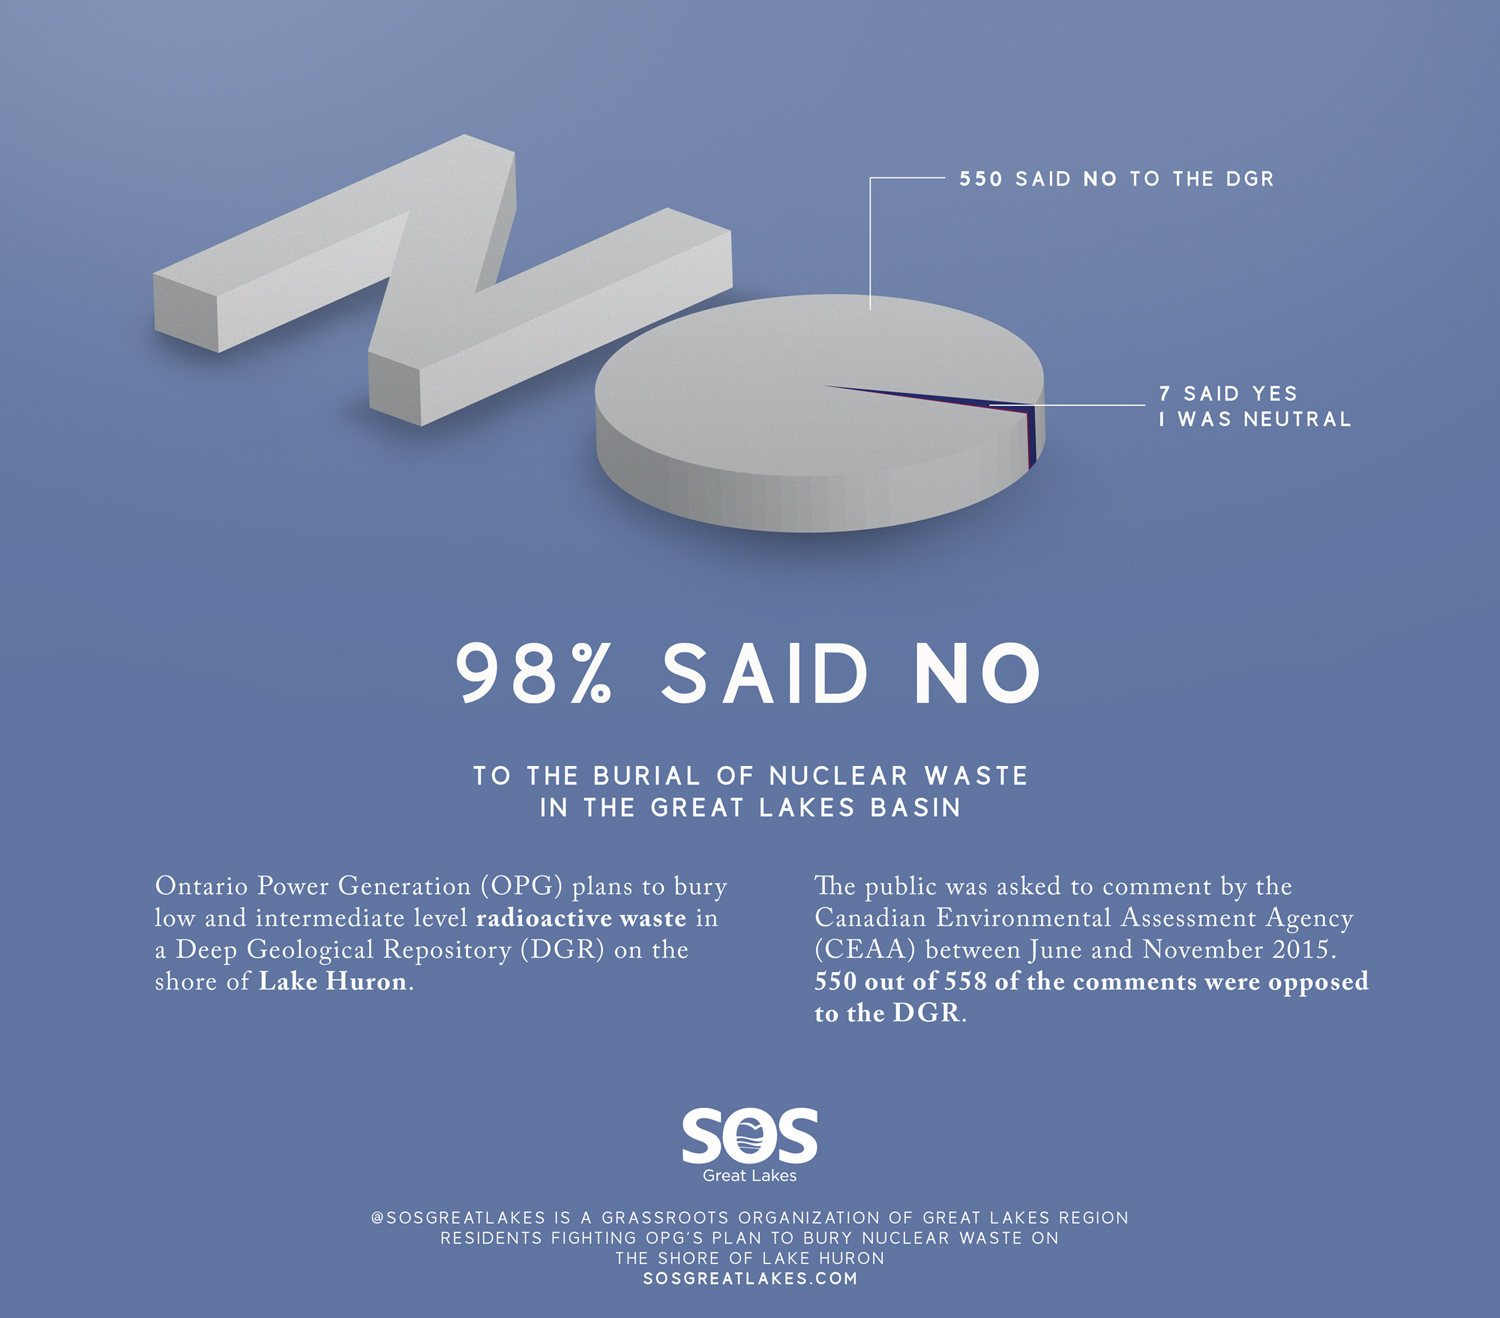 Infographics. Public Opinion. DGR. OPG. People say NO to the DGR.